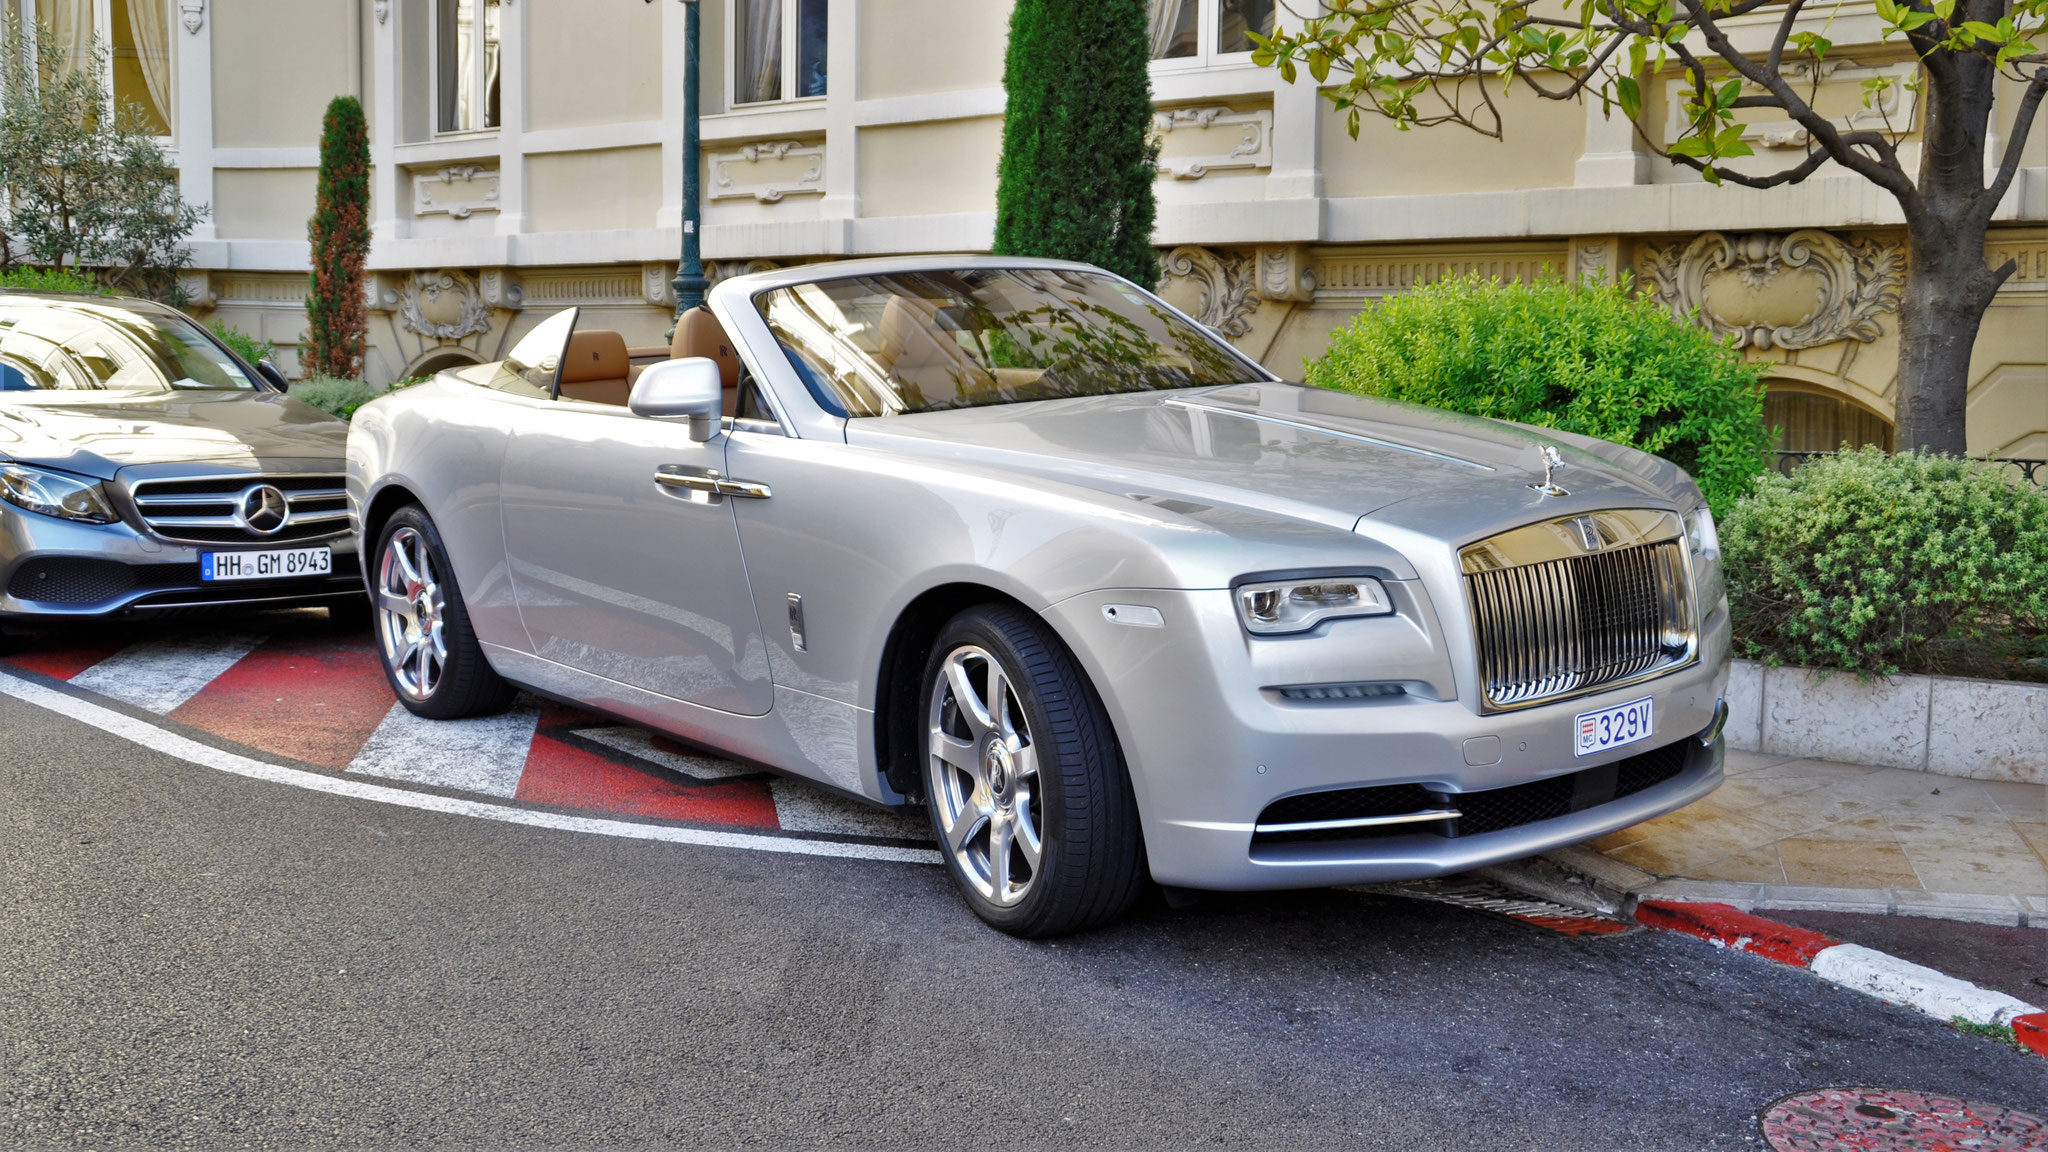 Rolls Royce Dawn - 329V (MC)